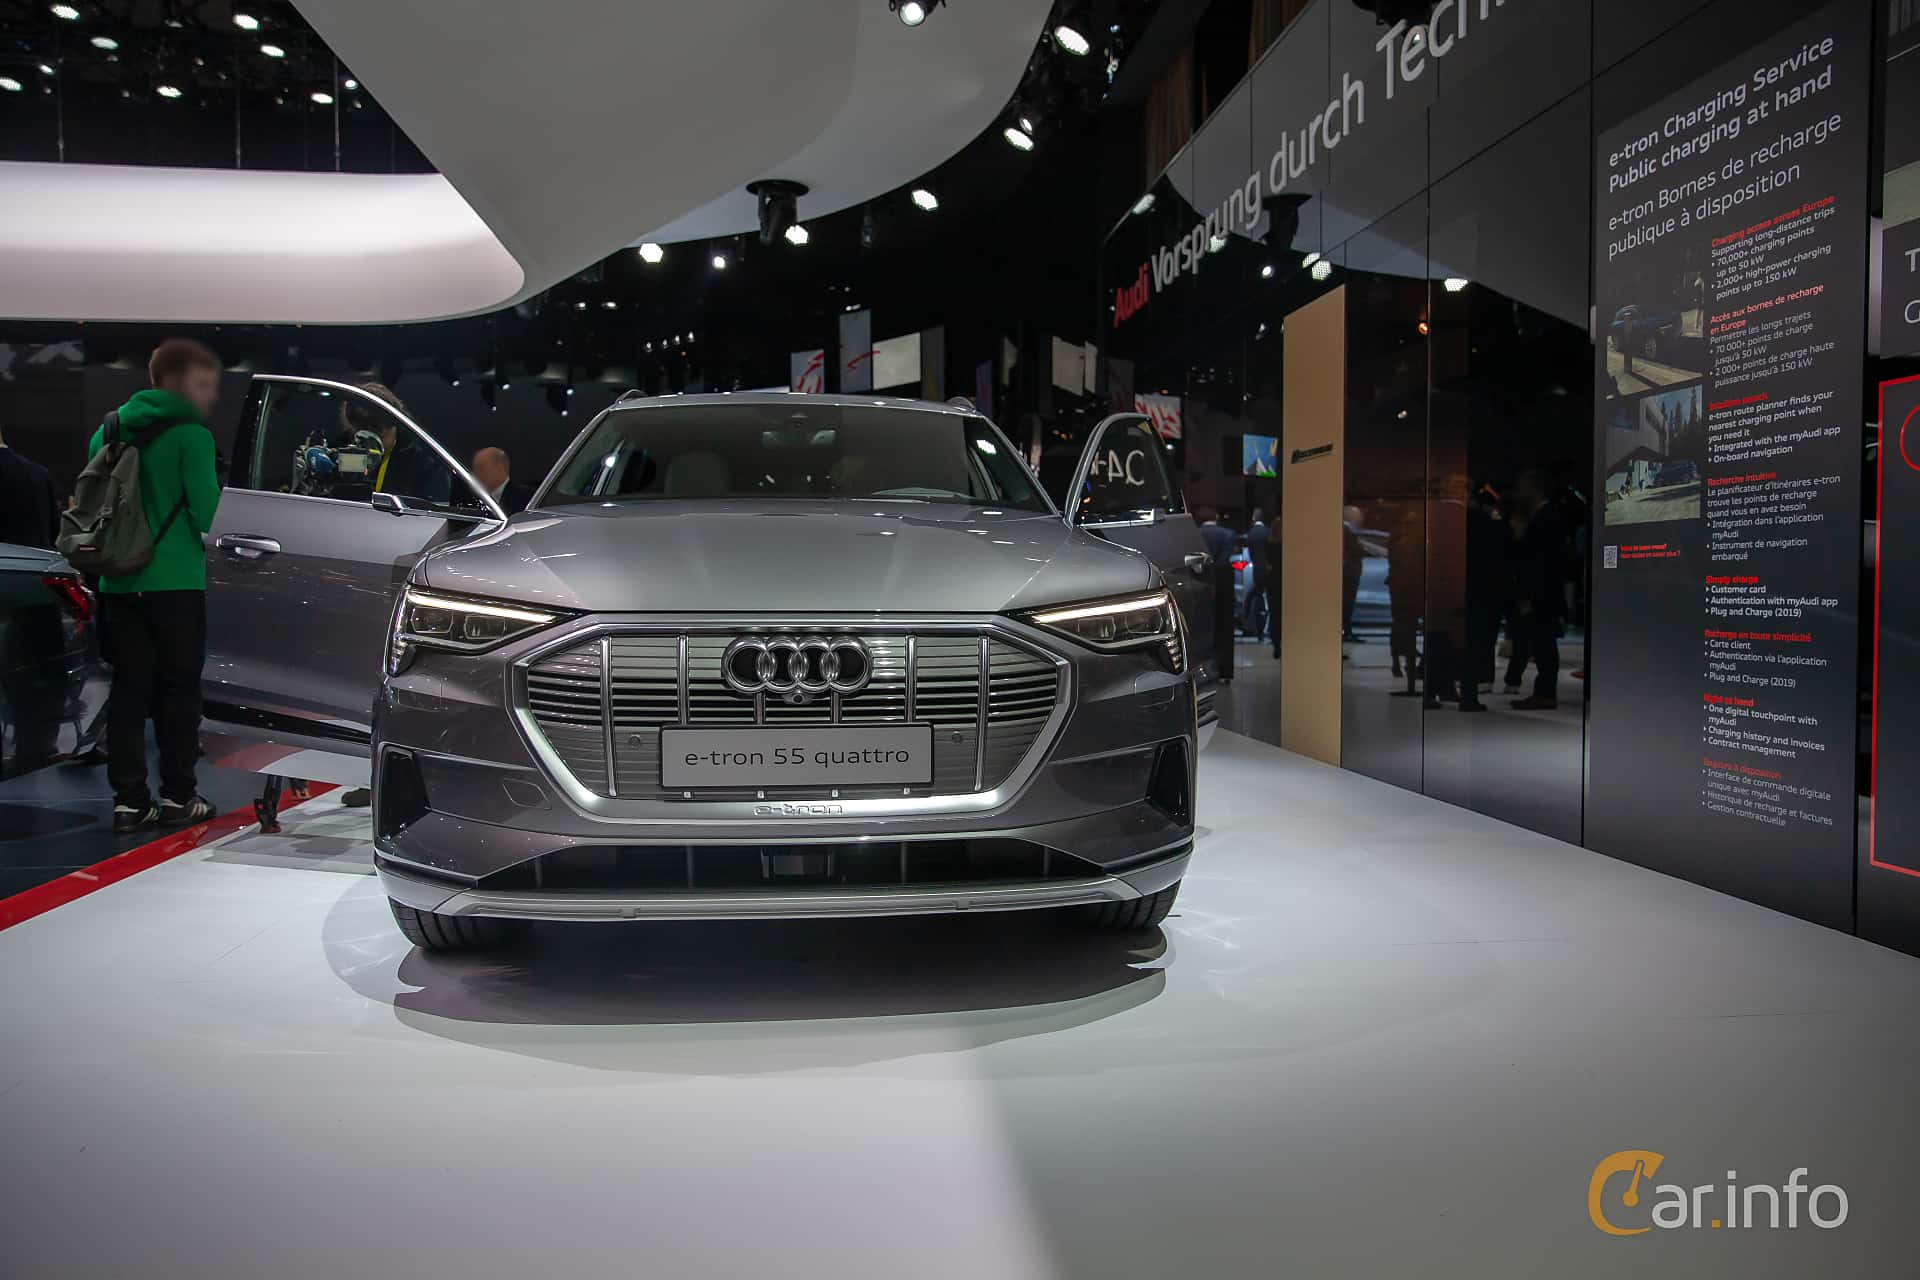 Front  of Audi e-tron 55 quattro  Single Speed, 408ps, 2019 at Geneva Motor Show 2019